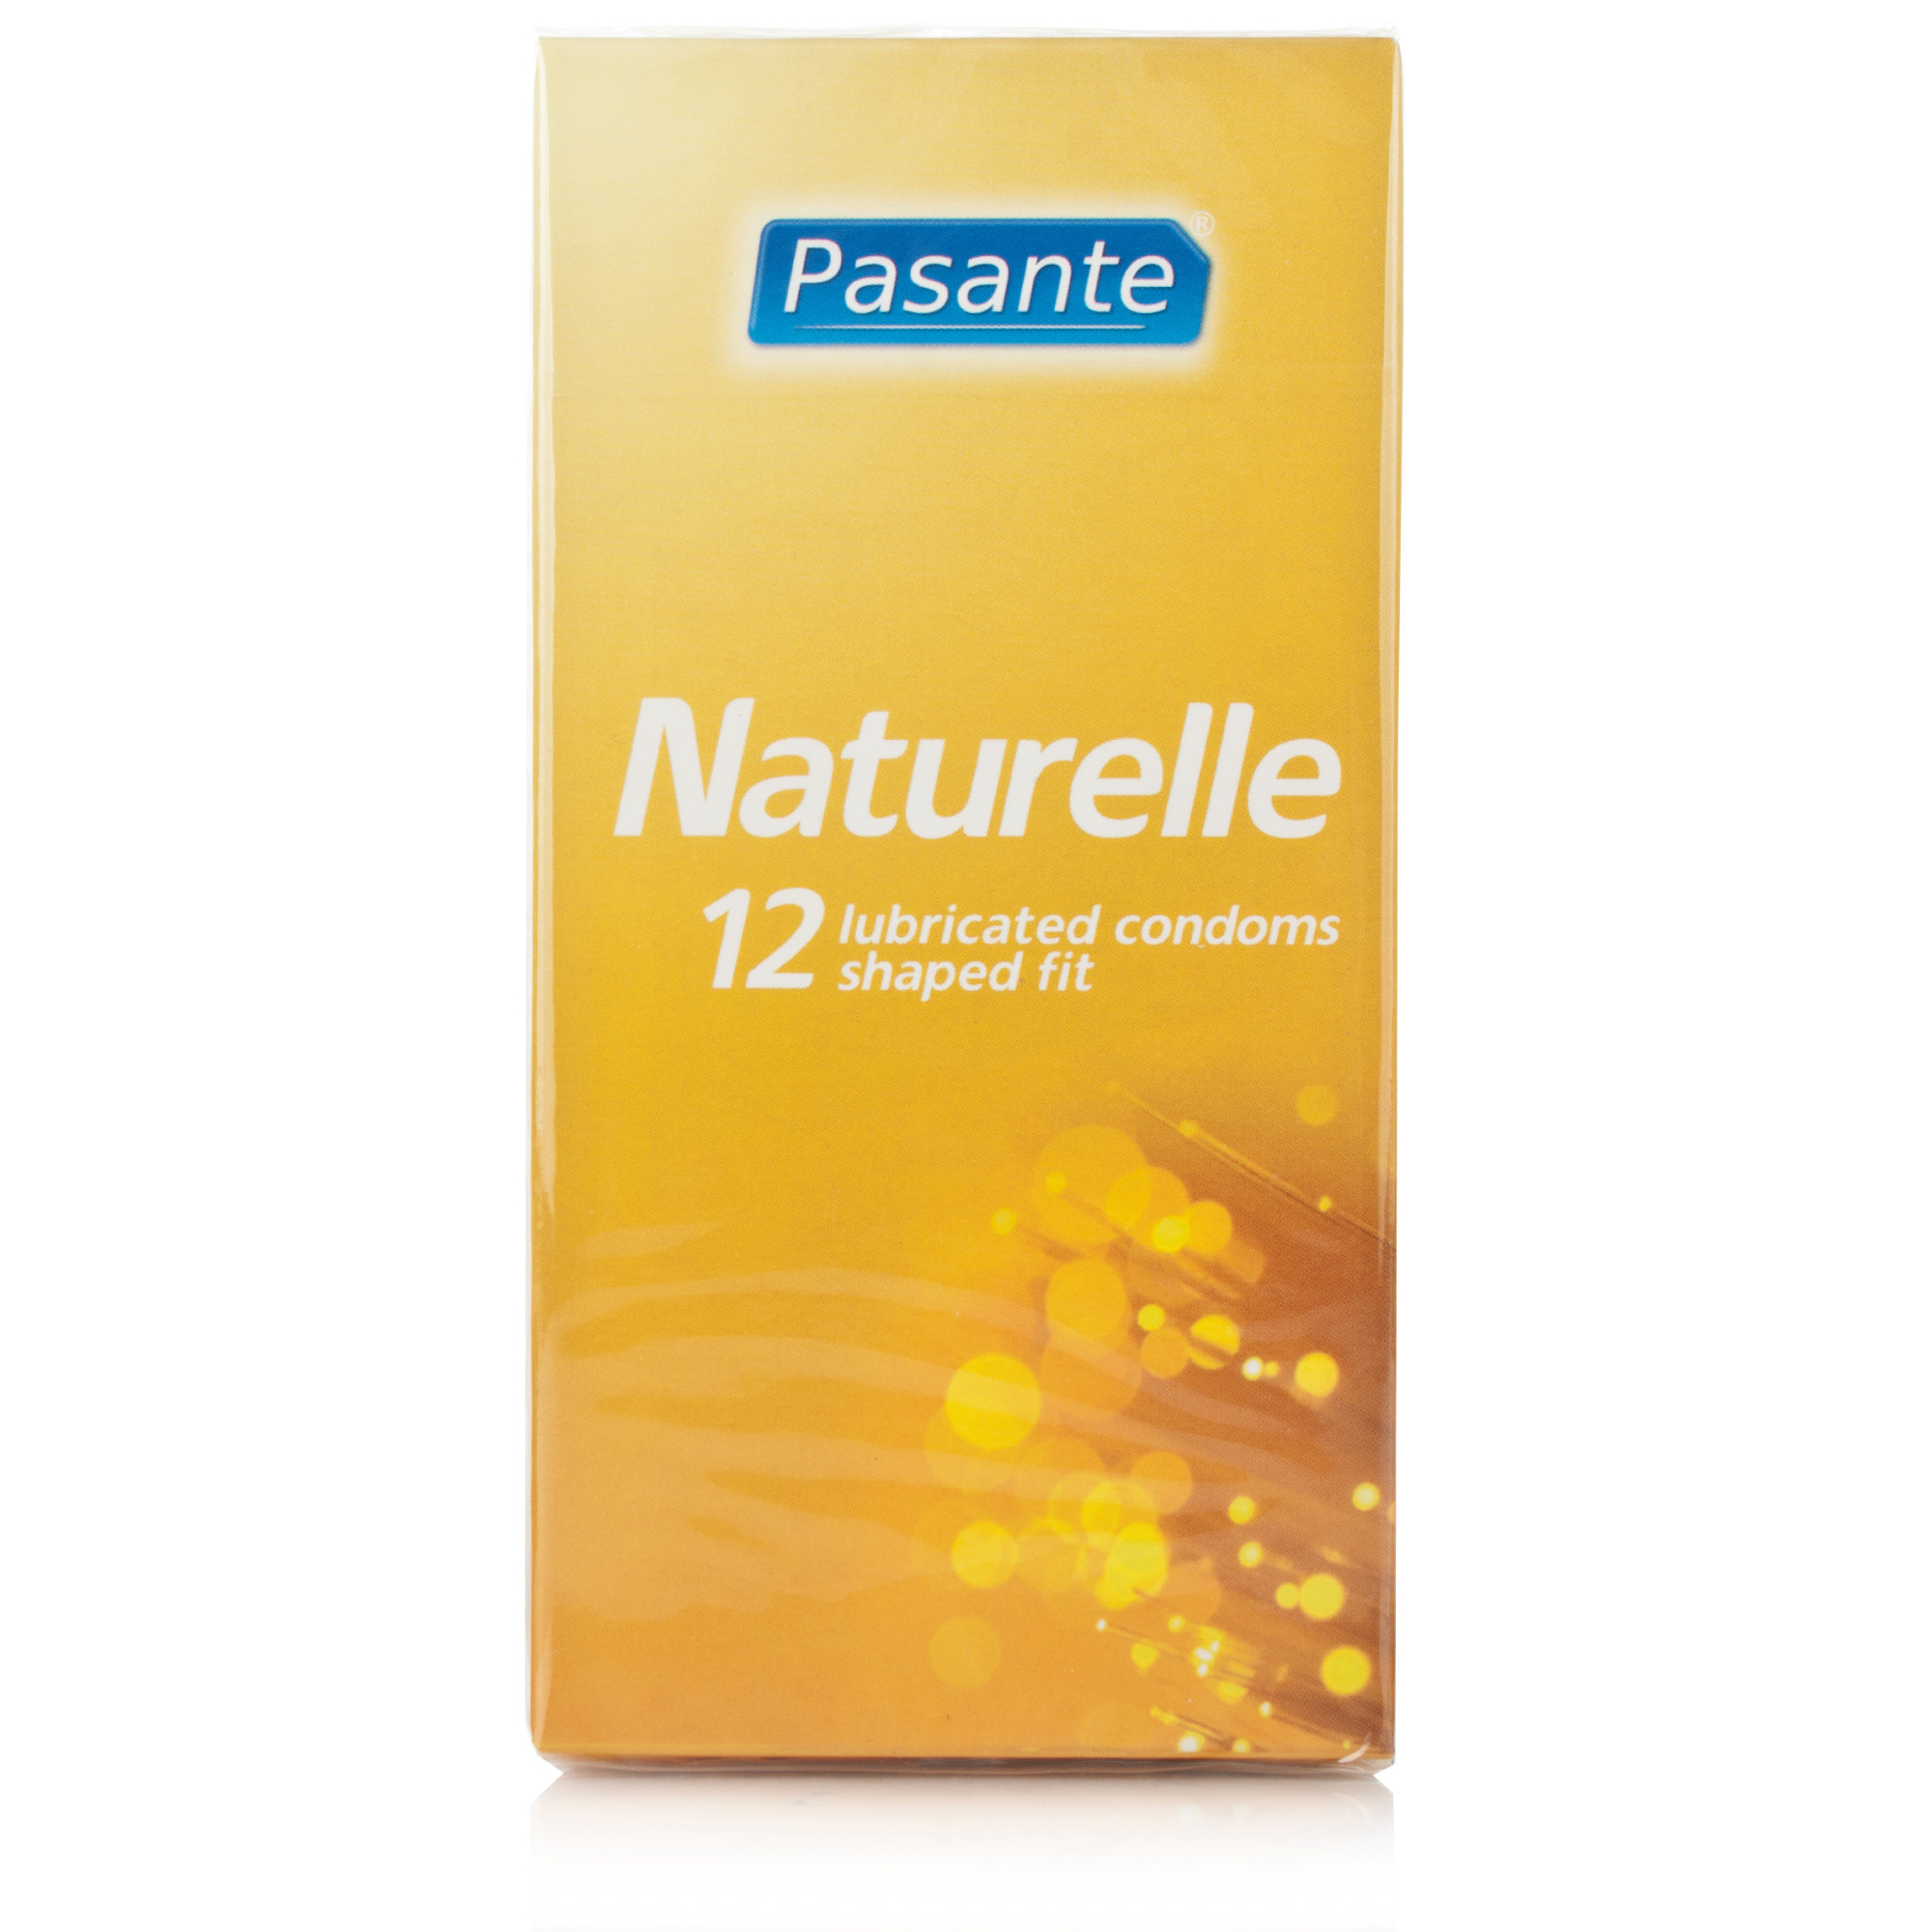 Pasante Naturelle Condoms